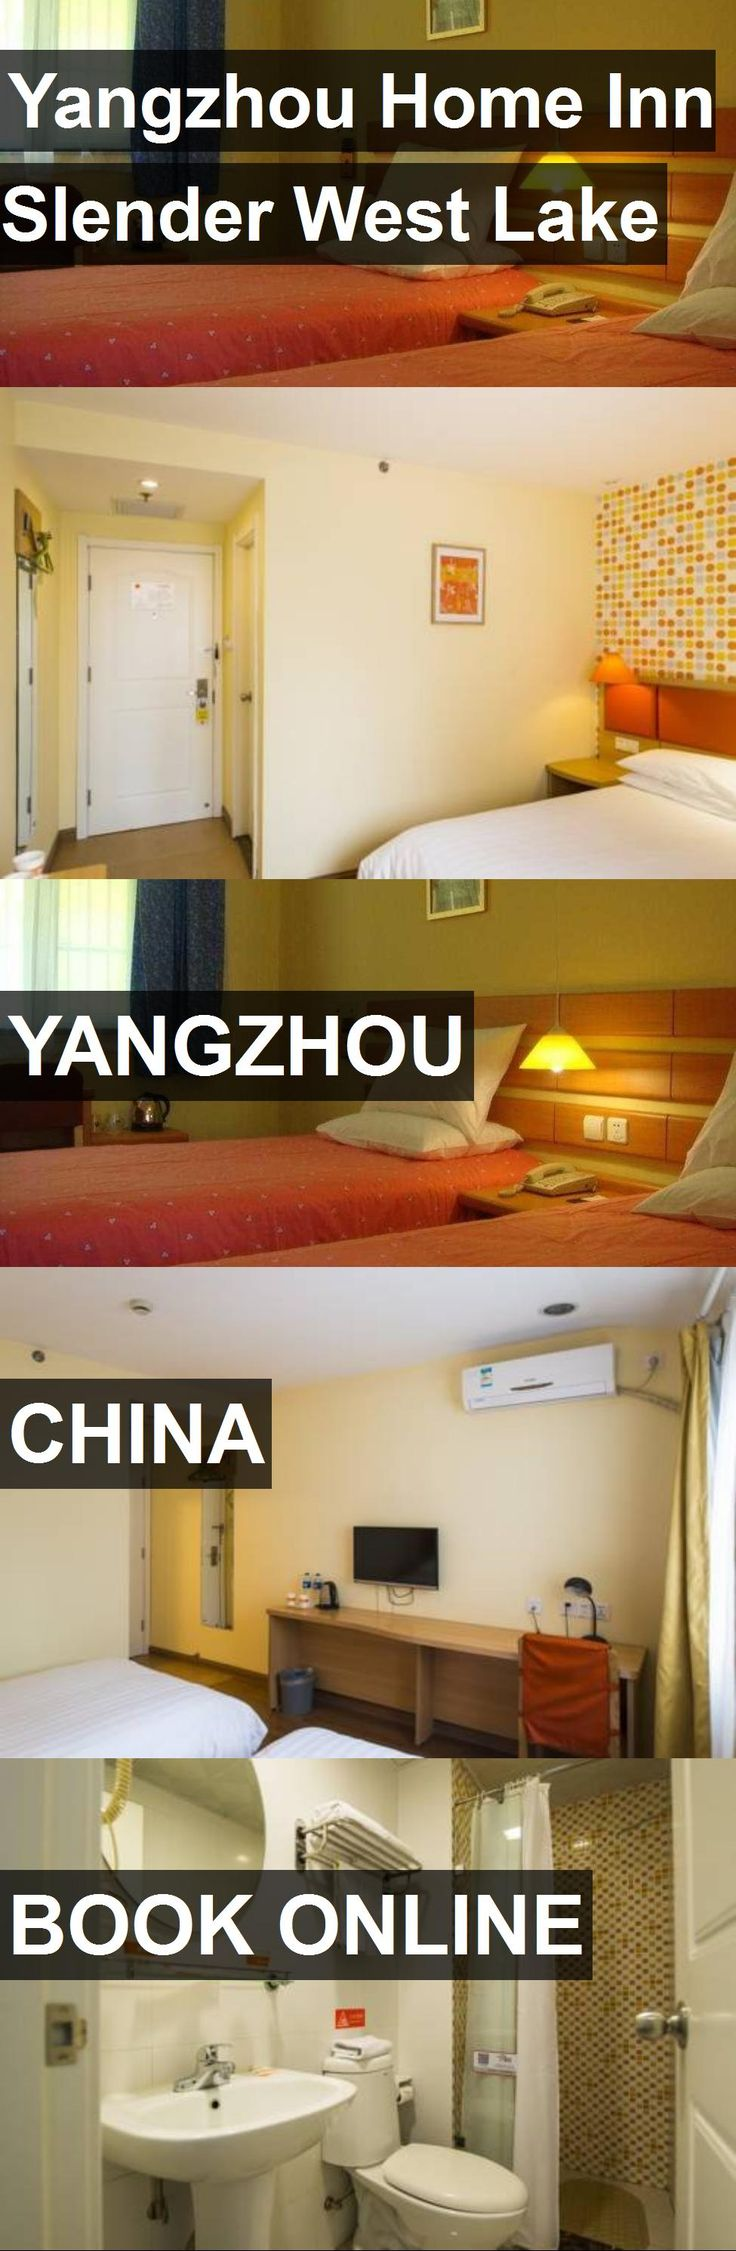 Hotel Yangzhou Home Inn Slender West Lake in Yangzhou, China. For more information, photos, reviews and best prices please follow the link. #China #Yangzhou #travel #vacation #hotel